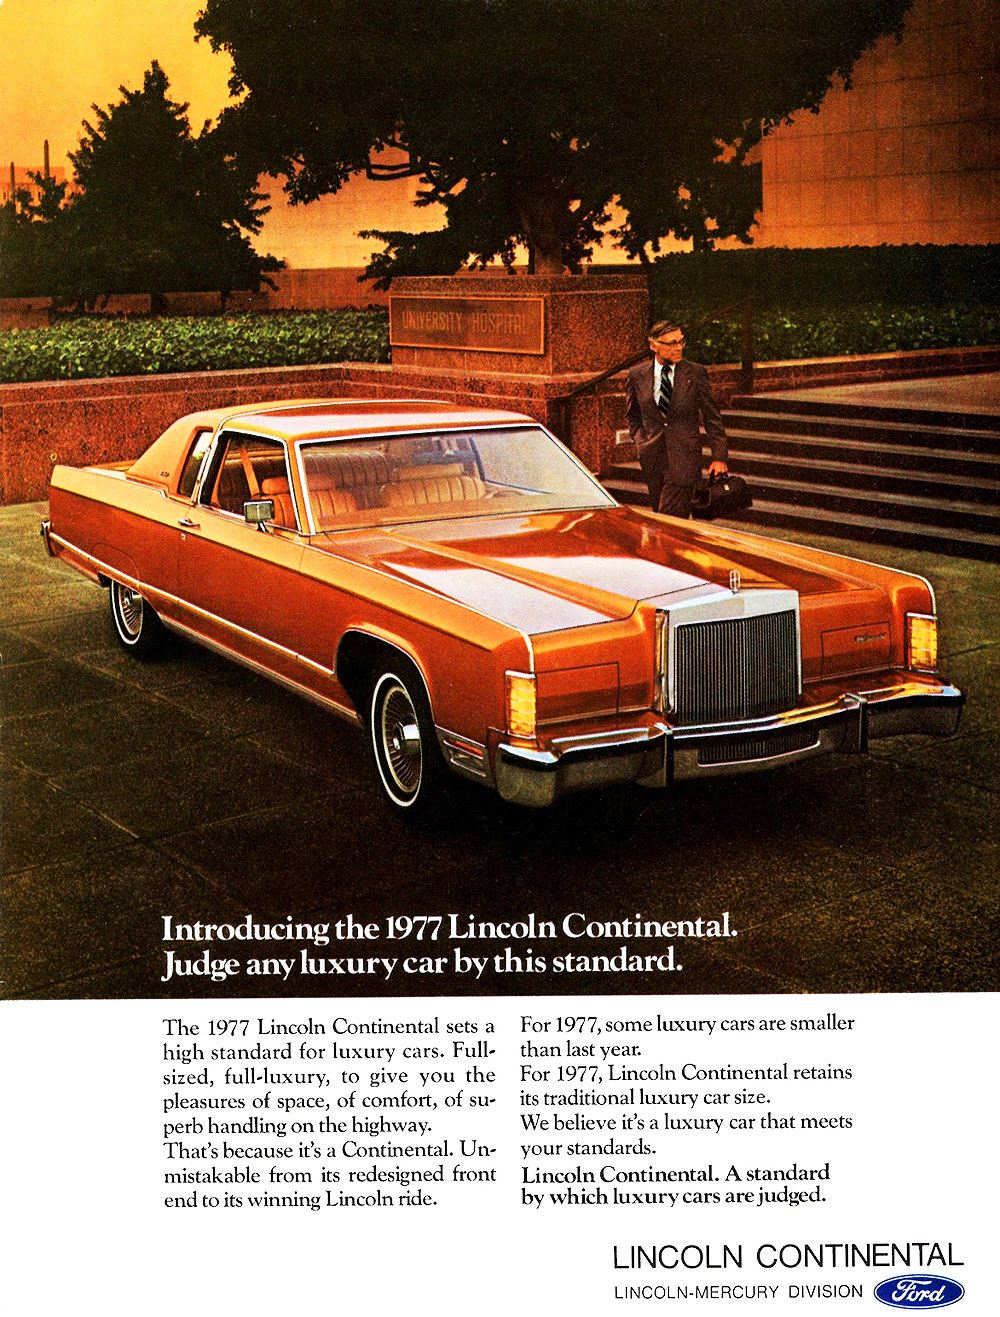 1977 Lincoln Continental advertisement